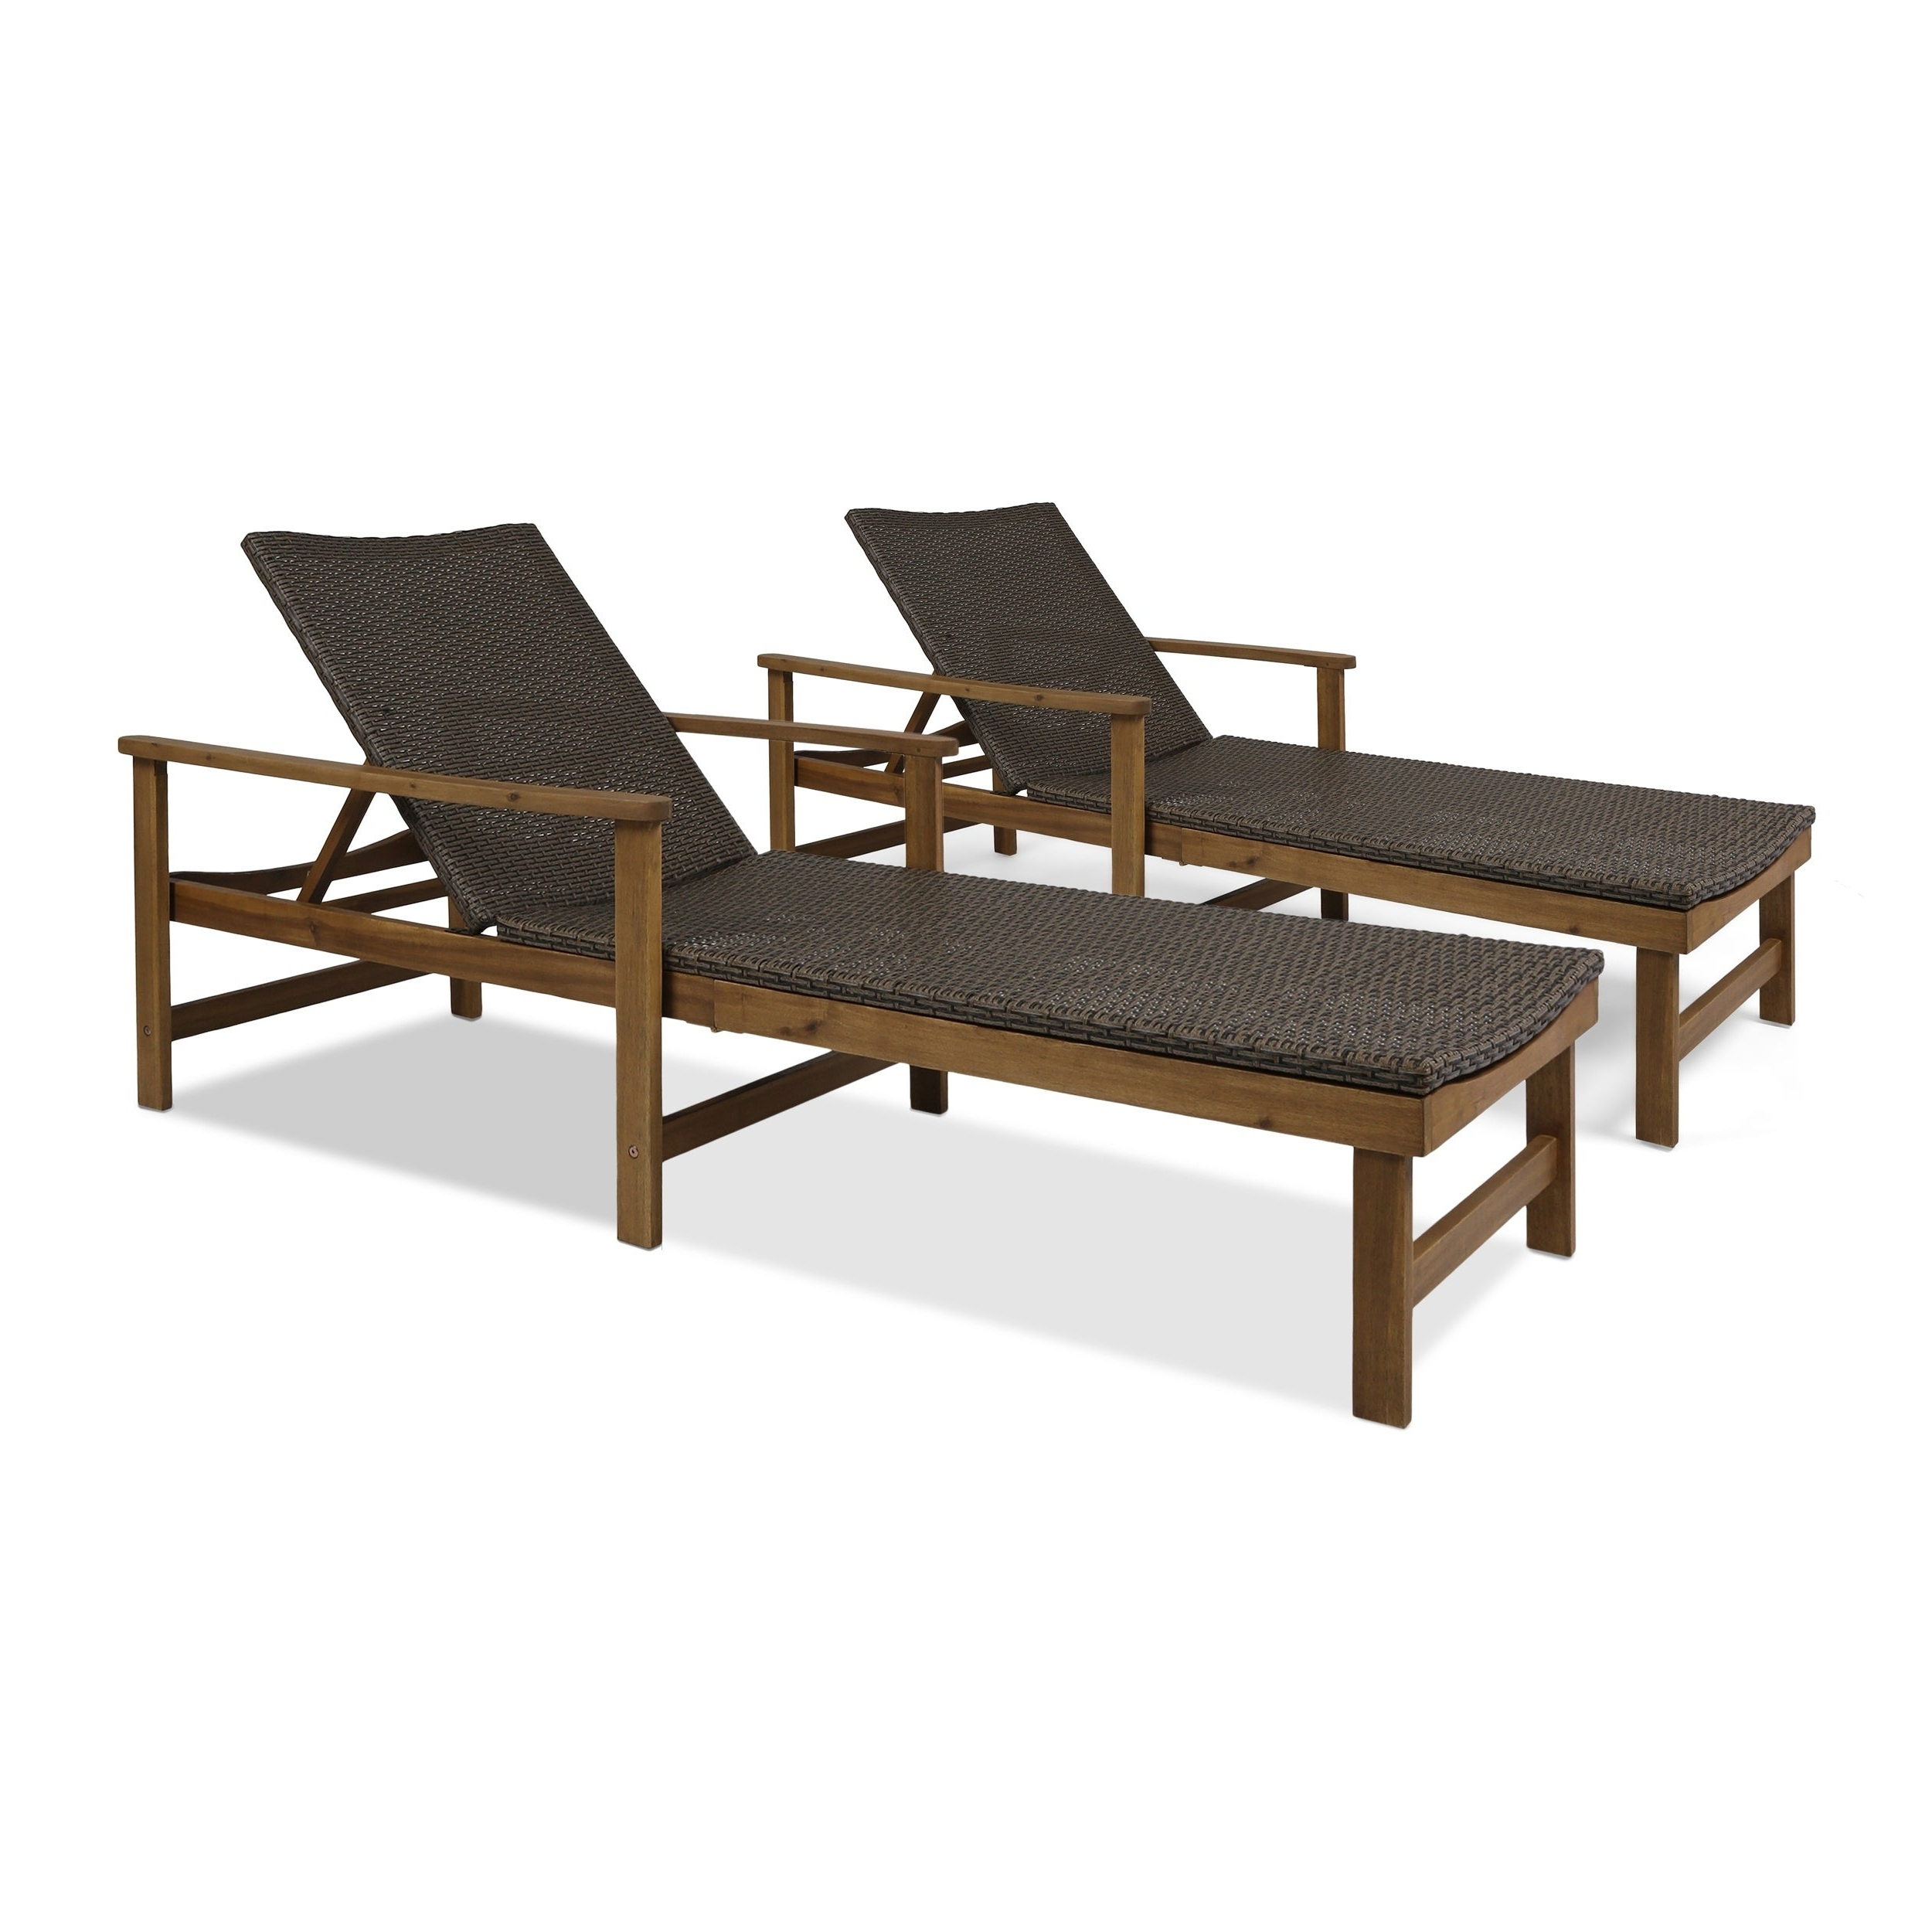 2020 Outdoor Living Manteca Ash Grey Acacia Wood Lounge Chairs Throughout Hampton Outdoor Chaise Lounges Acacia Wood And Wicker (Set Of 2) Christopher Knight Home (View 1 of 25)